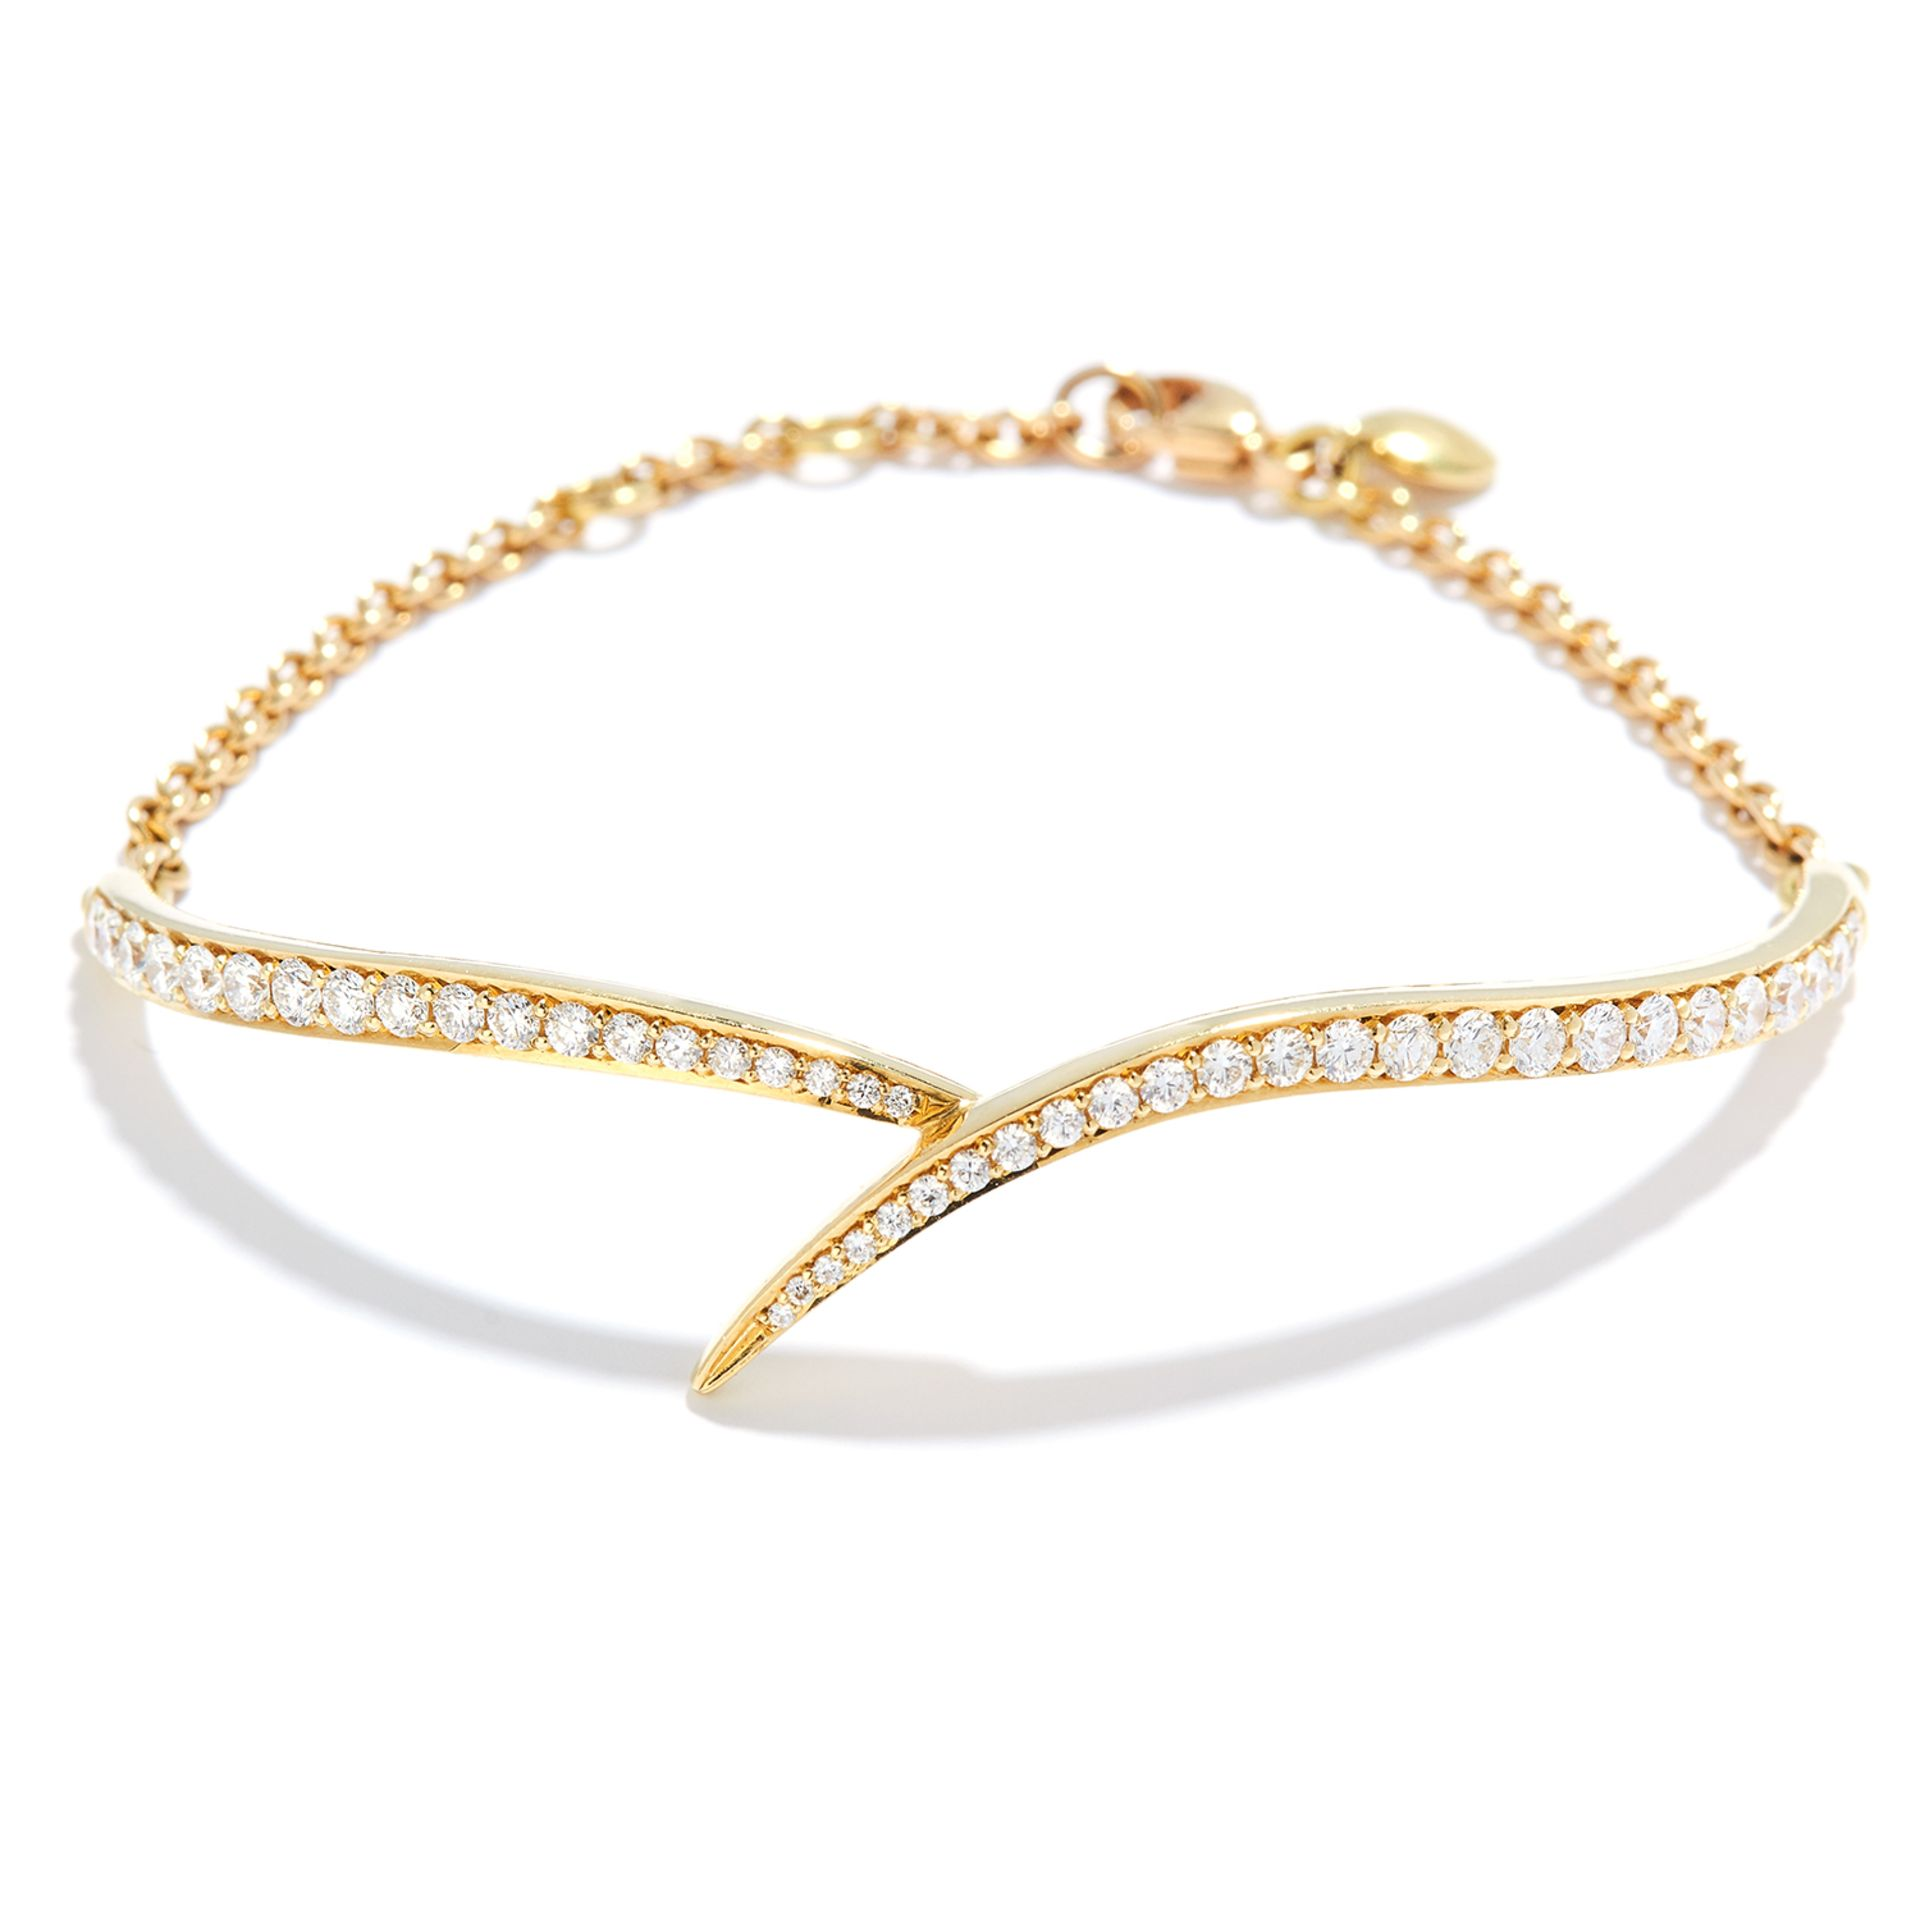 DIAMOND BRACELET, SEANE LEANE in 18ct yellow gold, set with a row of round cut diamonds in half